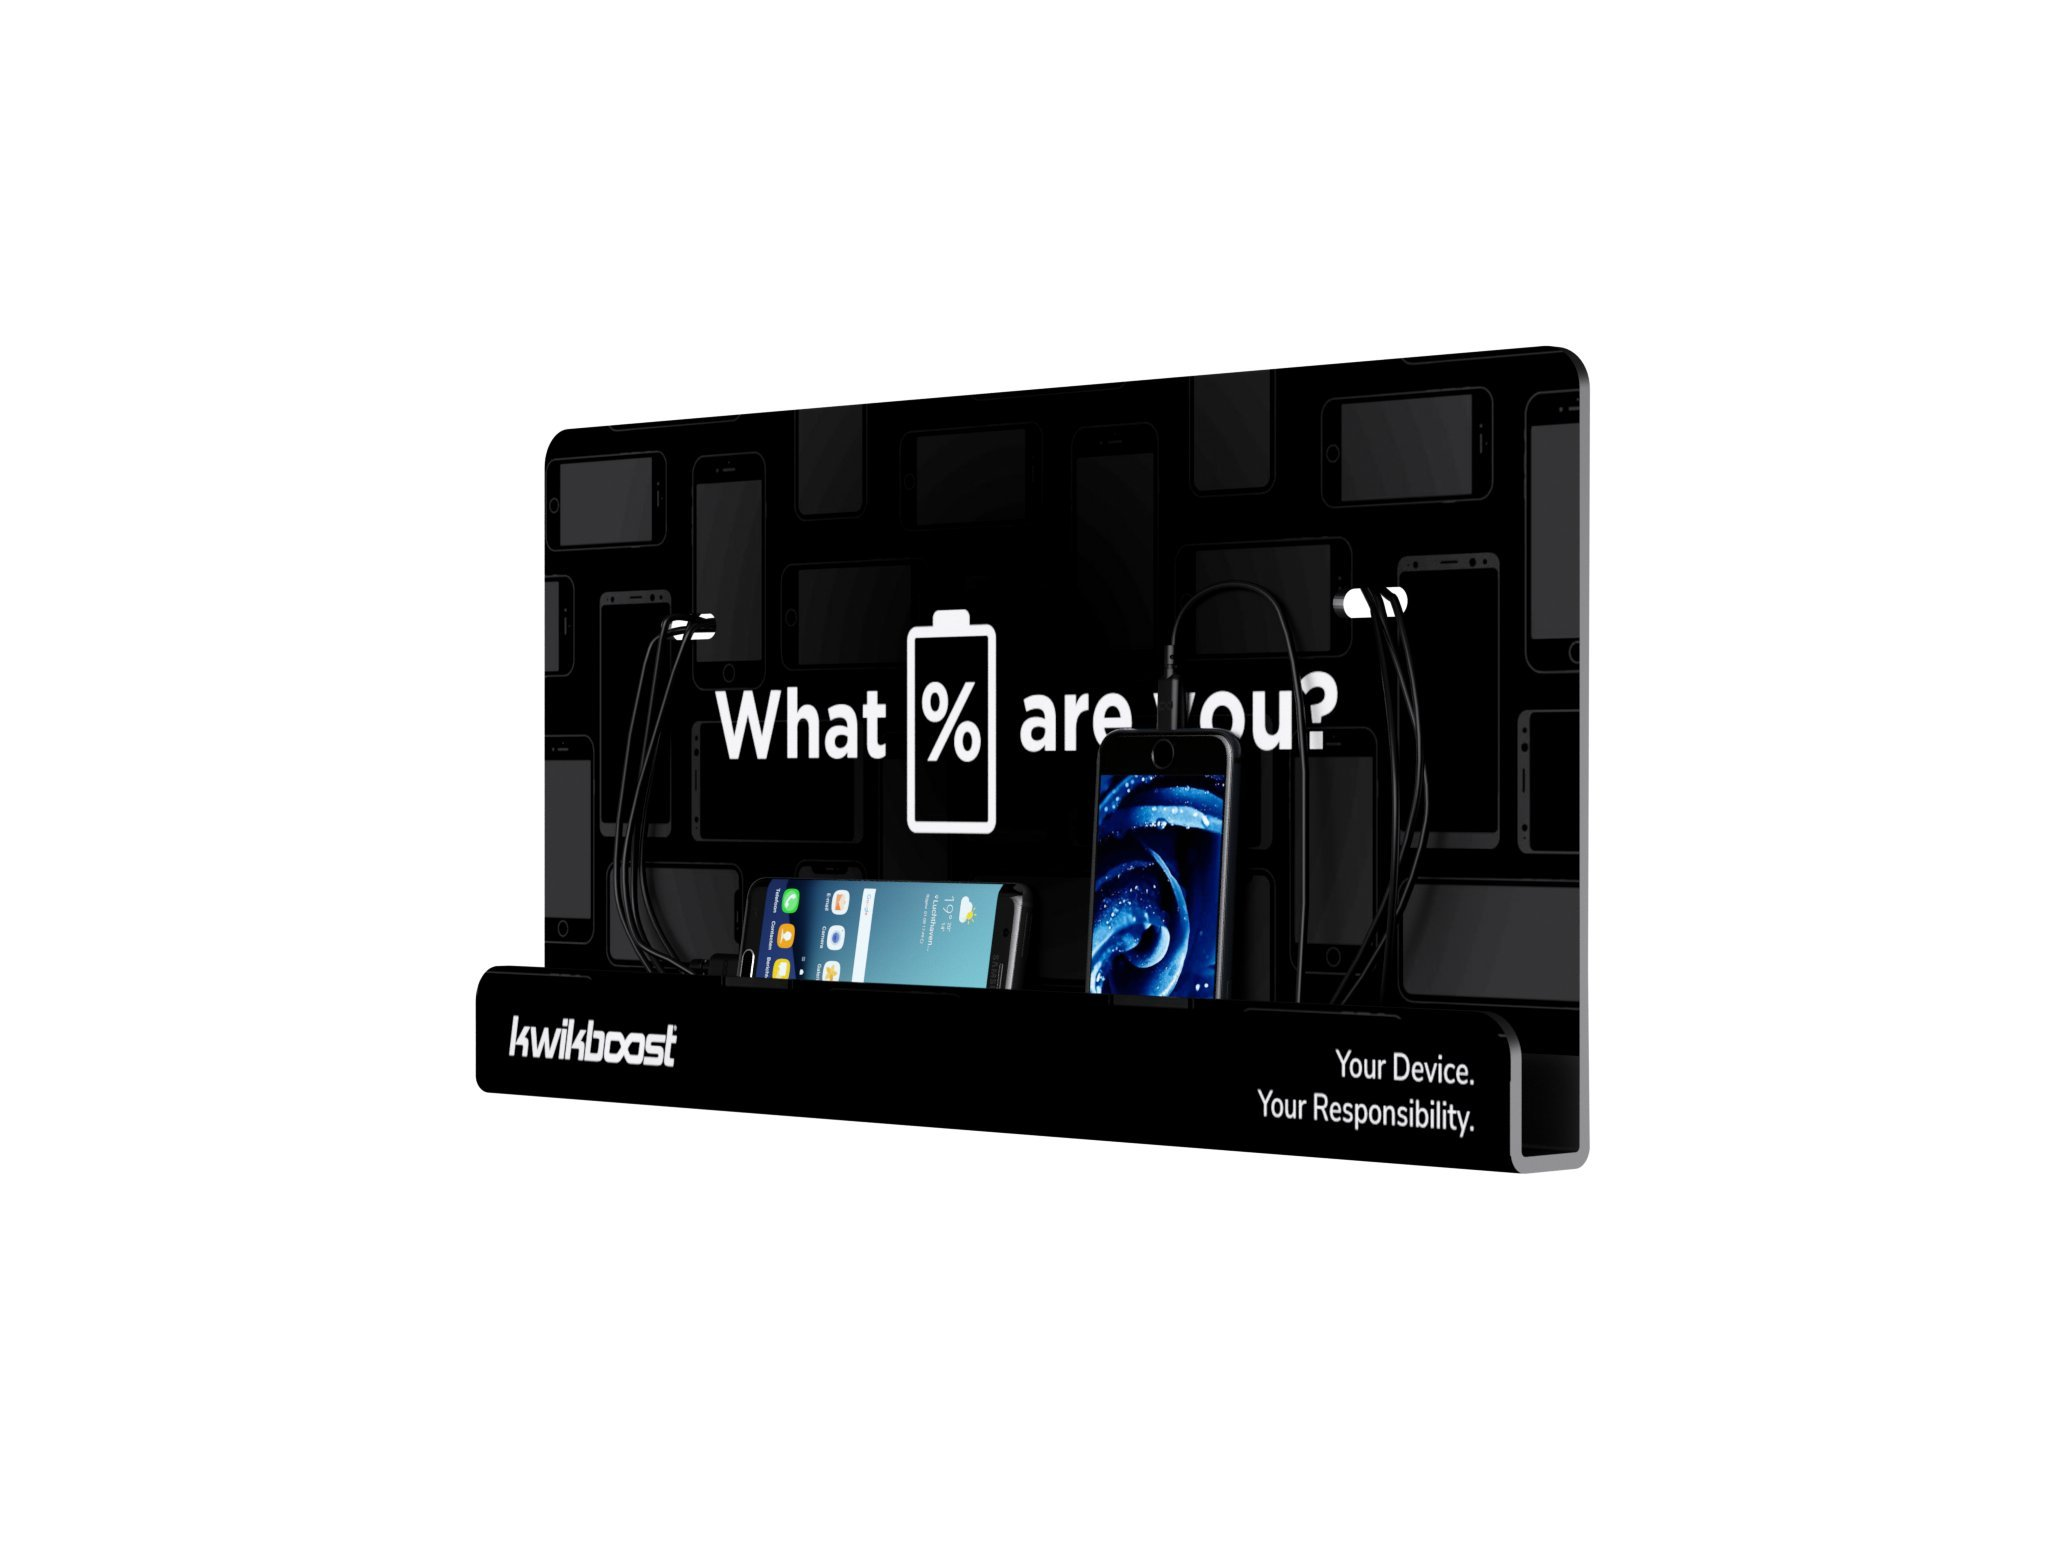 Wall Mount Cell Phone Charging Station by KwikBoost, Multi-Device Charging for up to 8 Devices including iPhone, iPad, Samsung, Tablets, and more. Great for School, Office, Business. and Events. by KwikBoost (Image #3)